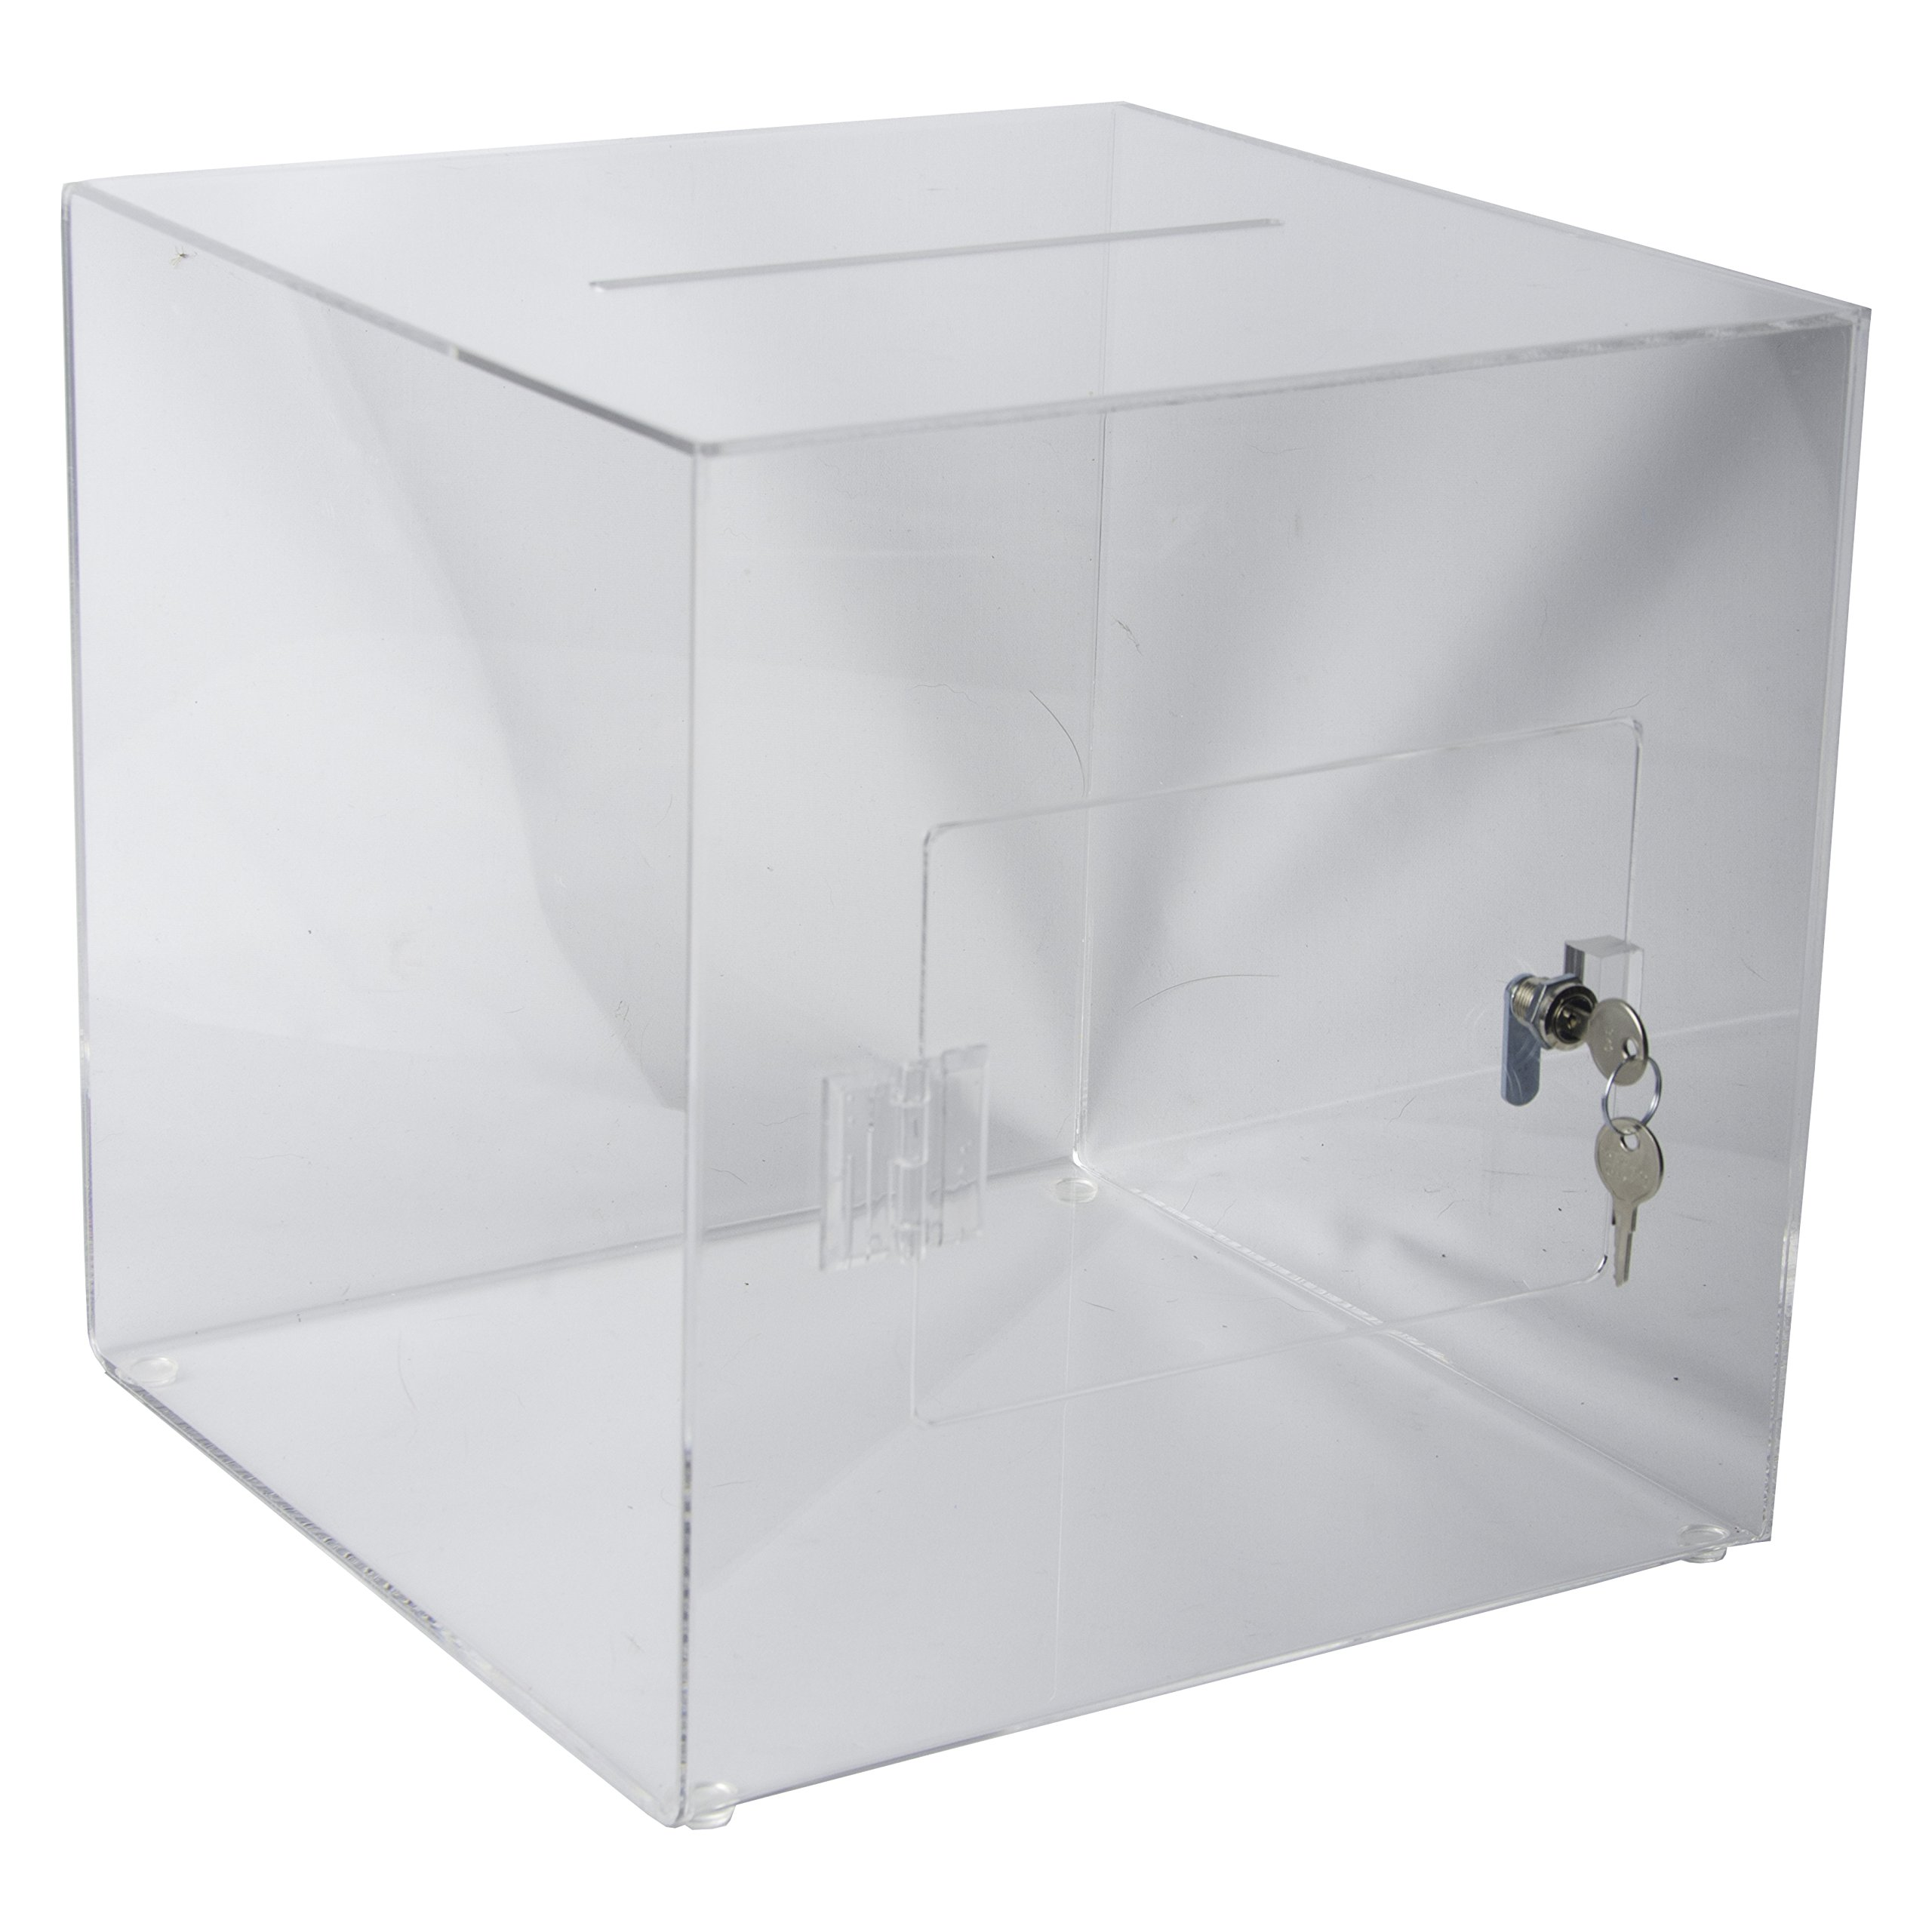 Clear-Ad - SBA-1111 - Acrylic Ballot Box with Lock - Plastic Container for Donation Voting, Charity, Survey, Raffle, Contest, Suggestions, Tips, Comments (11x11x11 Clear)